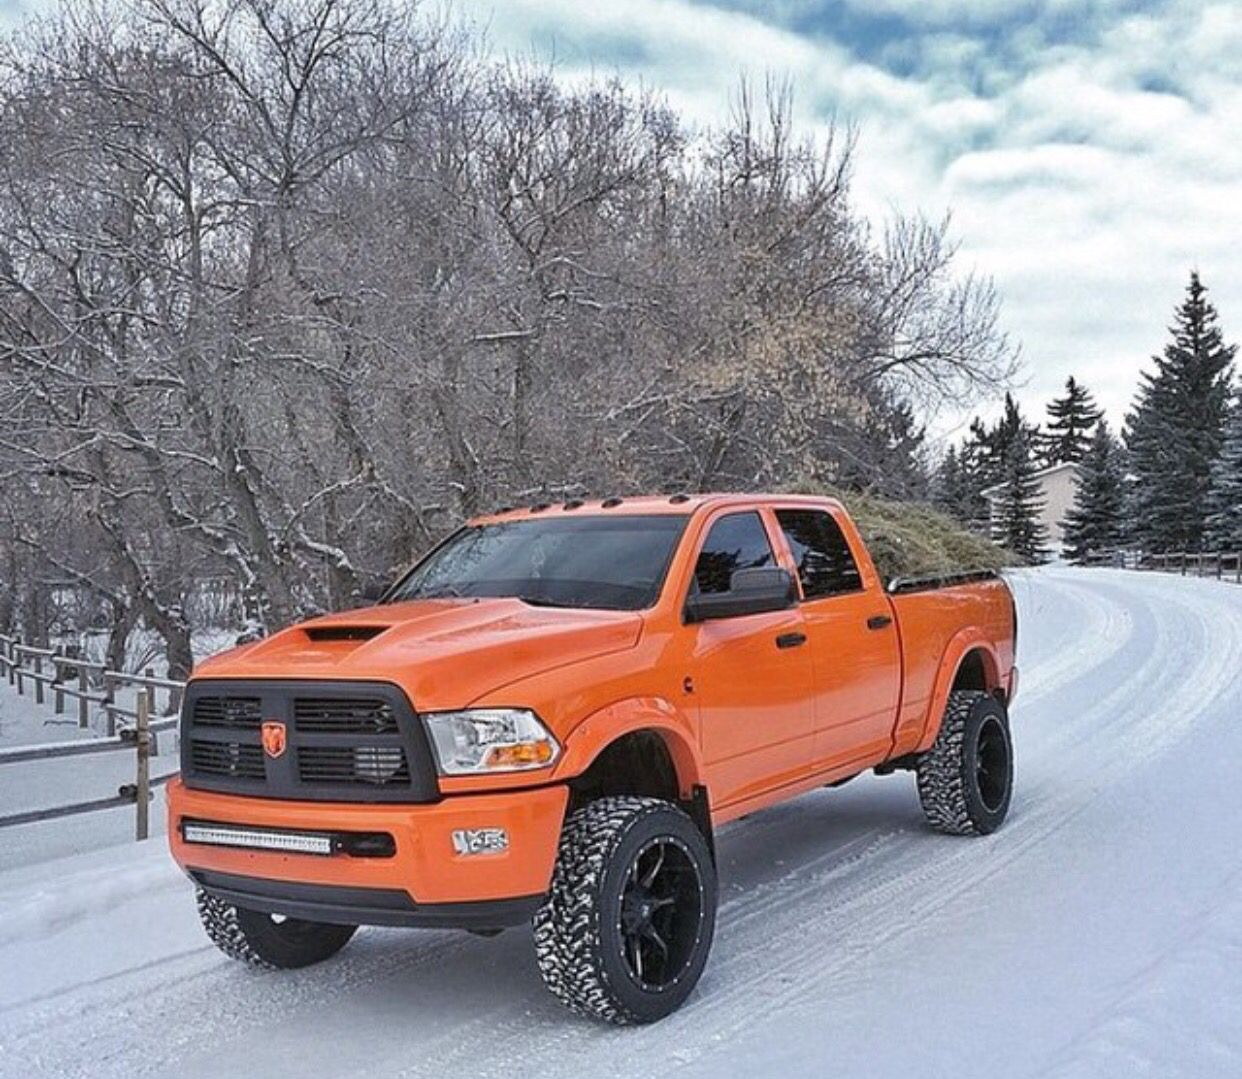 Dodge Ram 1500: Nice Cummins! Pretty Color